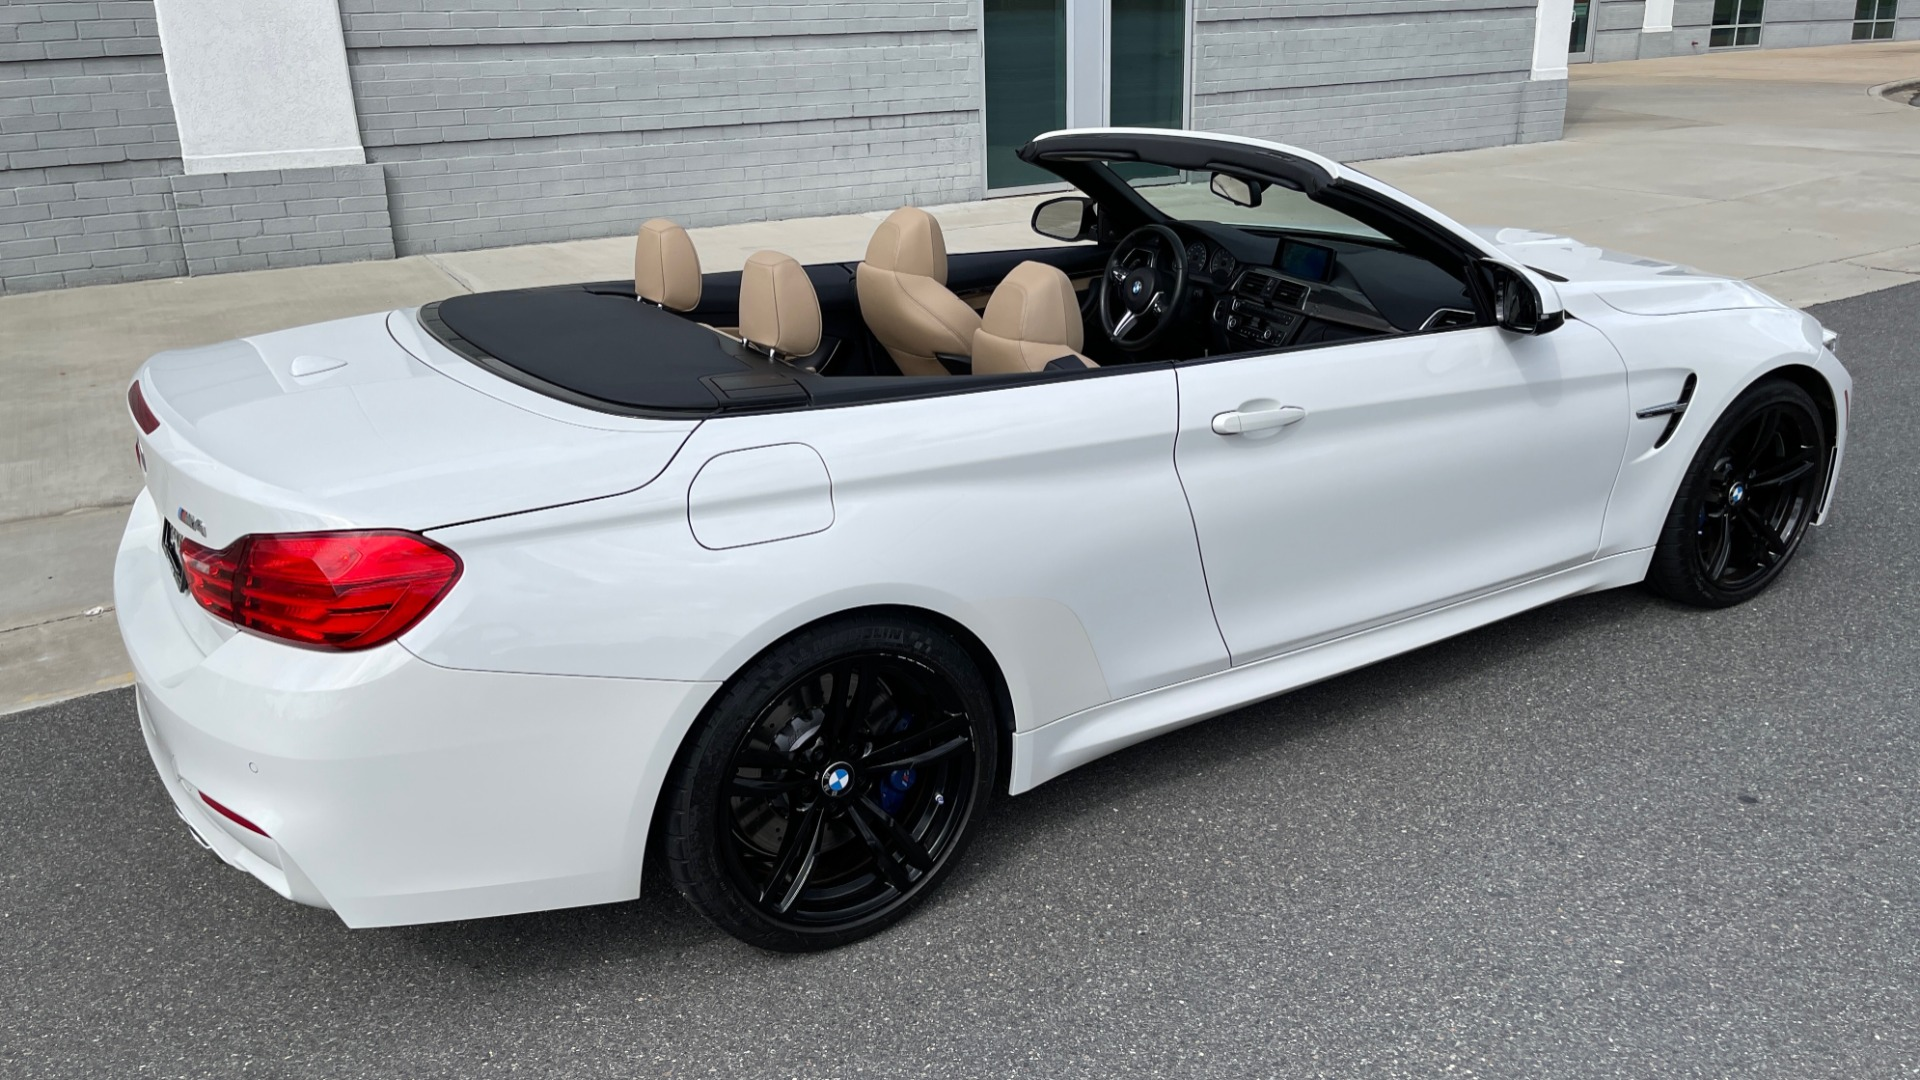 Used 2016 BMW M4 CONVERTIBLE 3.0L / 7-SPD AUTO / EXECUTIVE / ADAPT M SUSP / REARVIEW for sale $53,999 at Formula Imports in Charlotte NC 28227 3